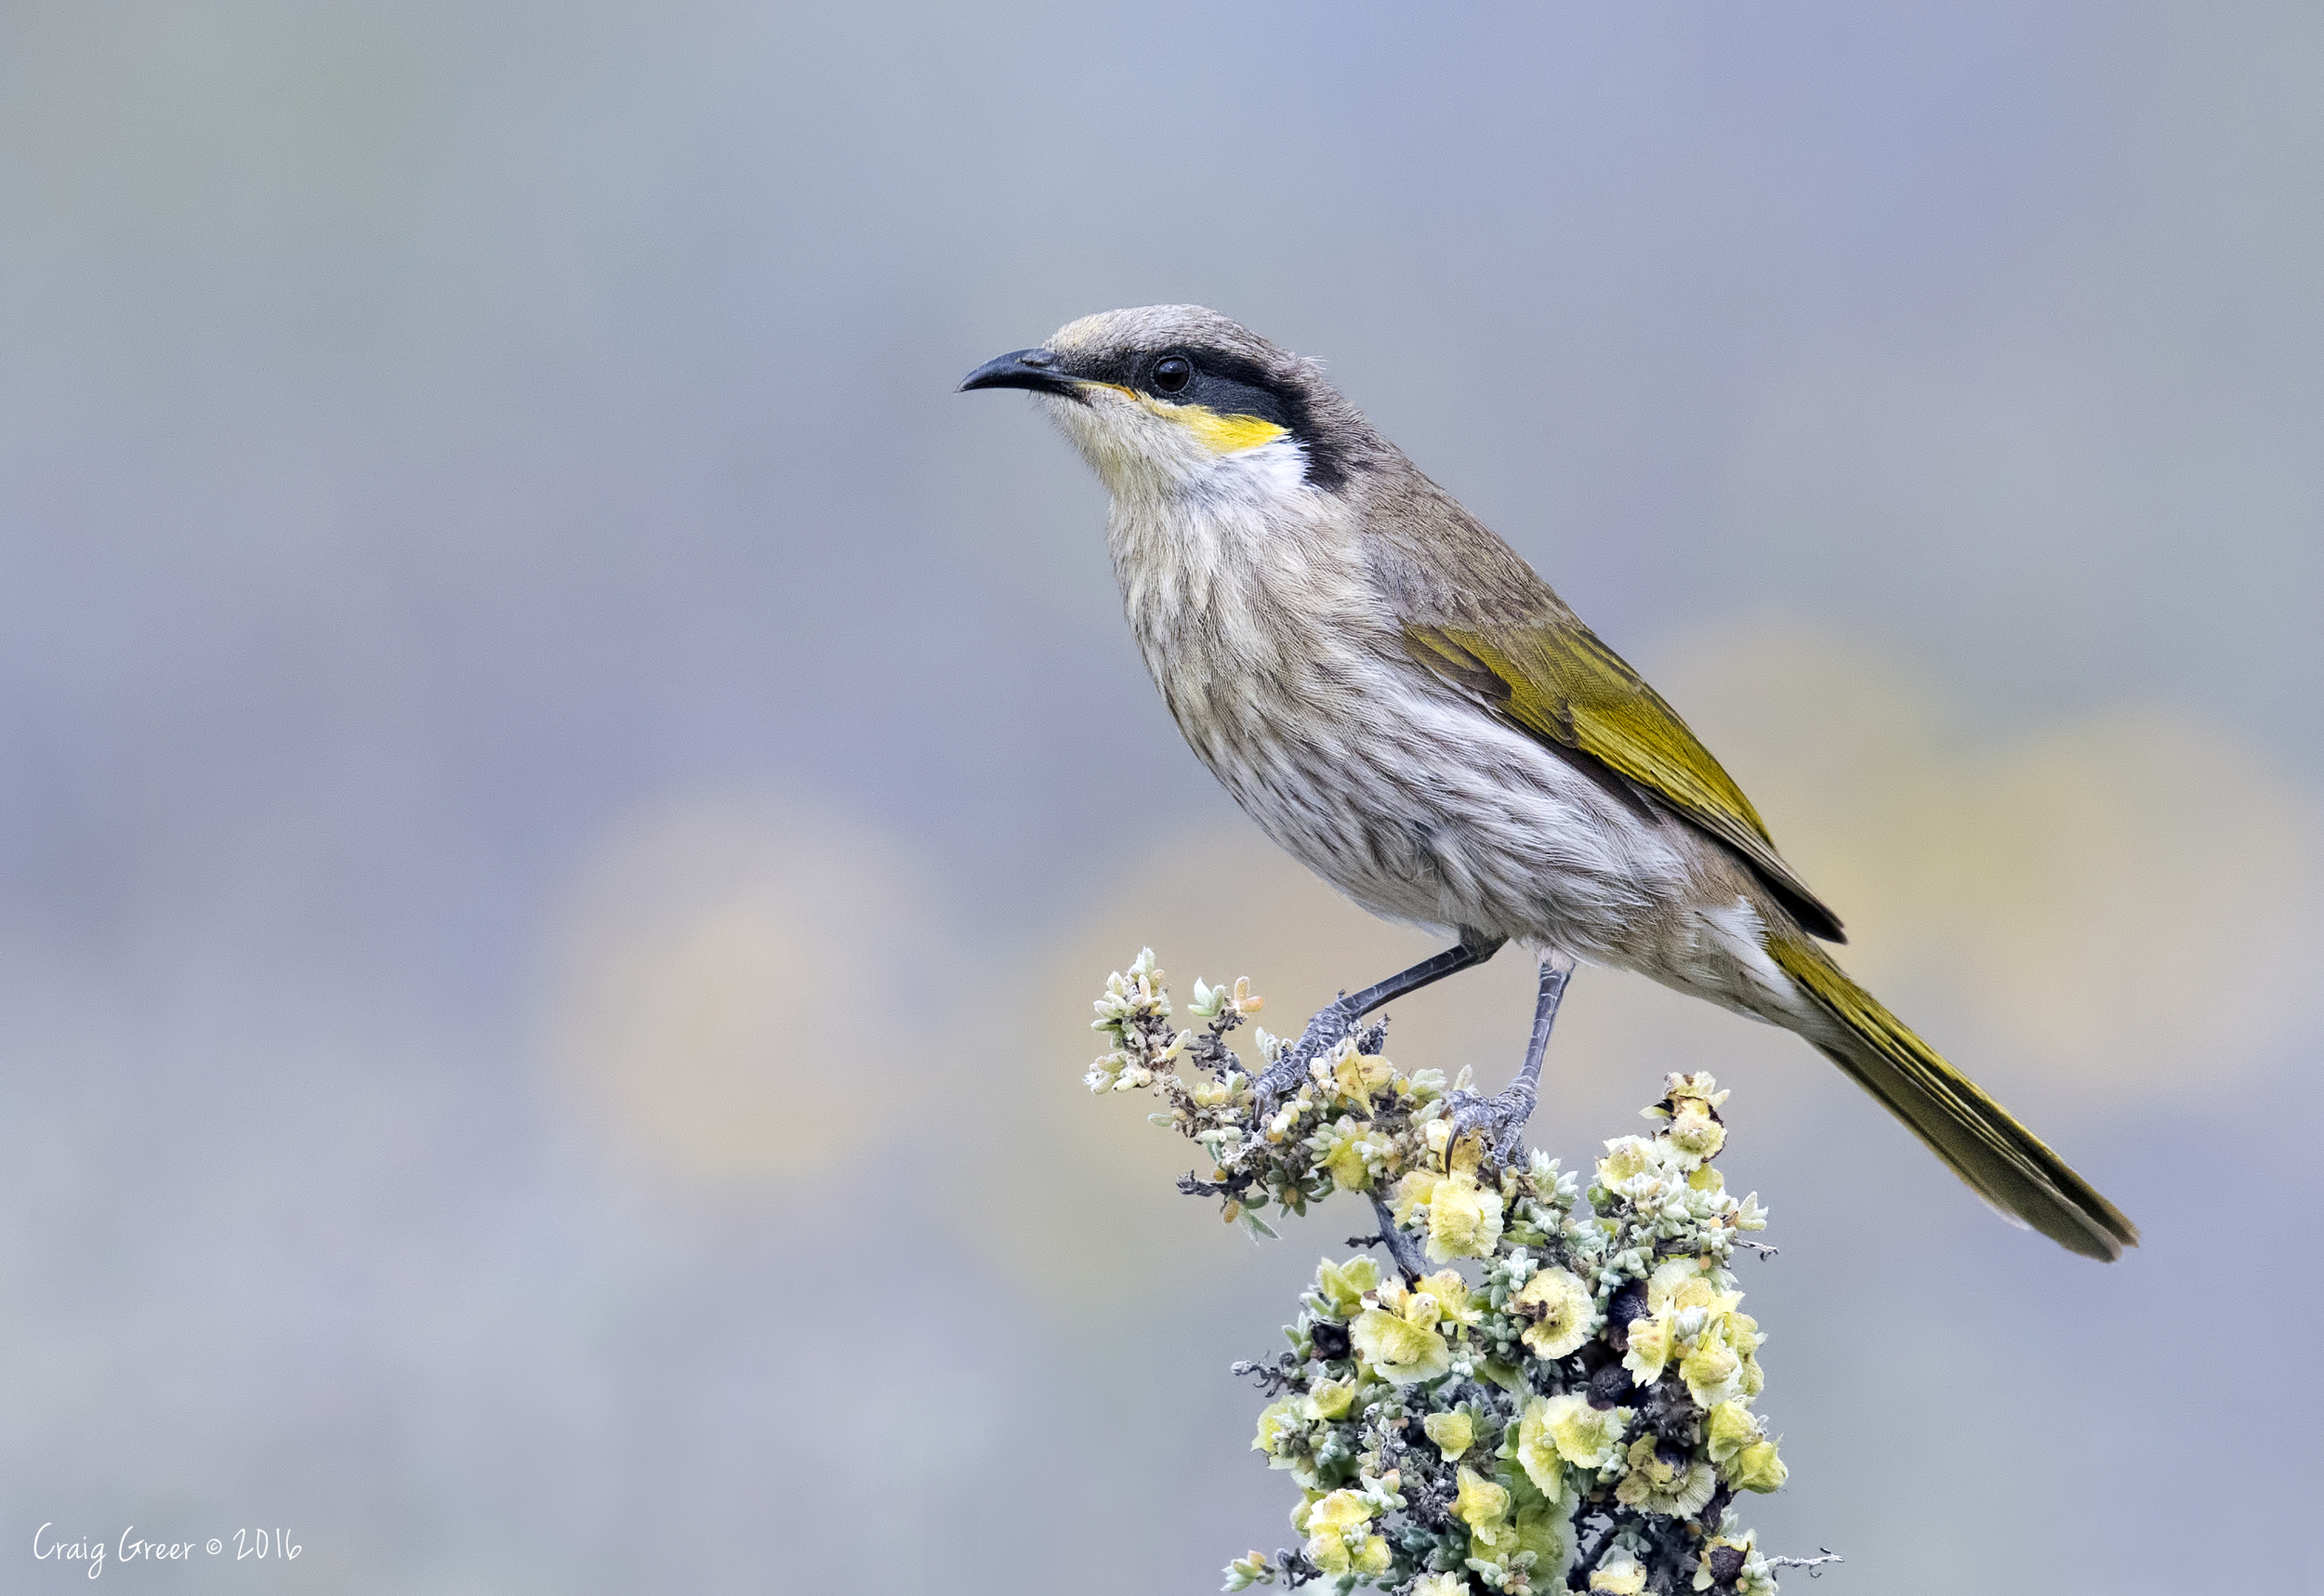 Singing-Honeyeater-Arid-Lands-31-07-16.jpg